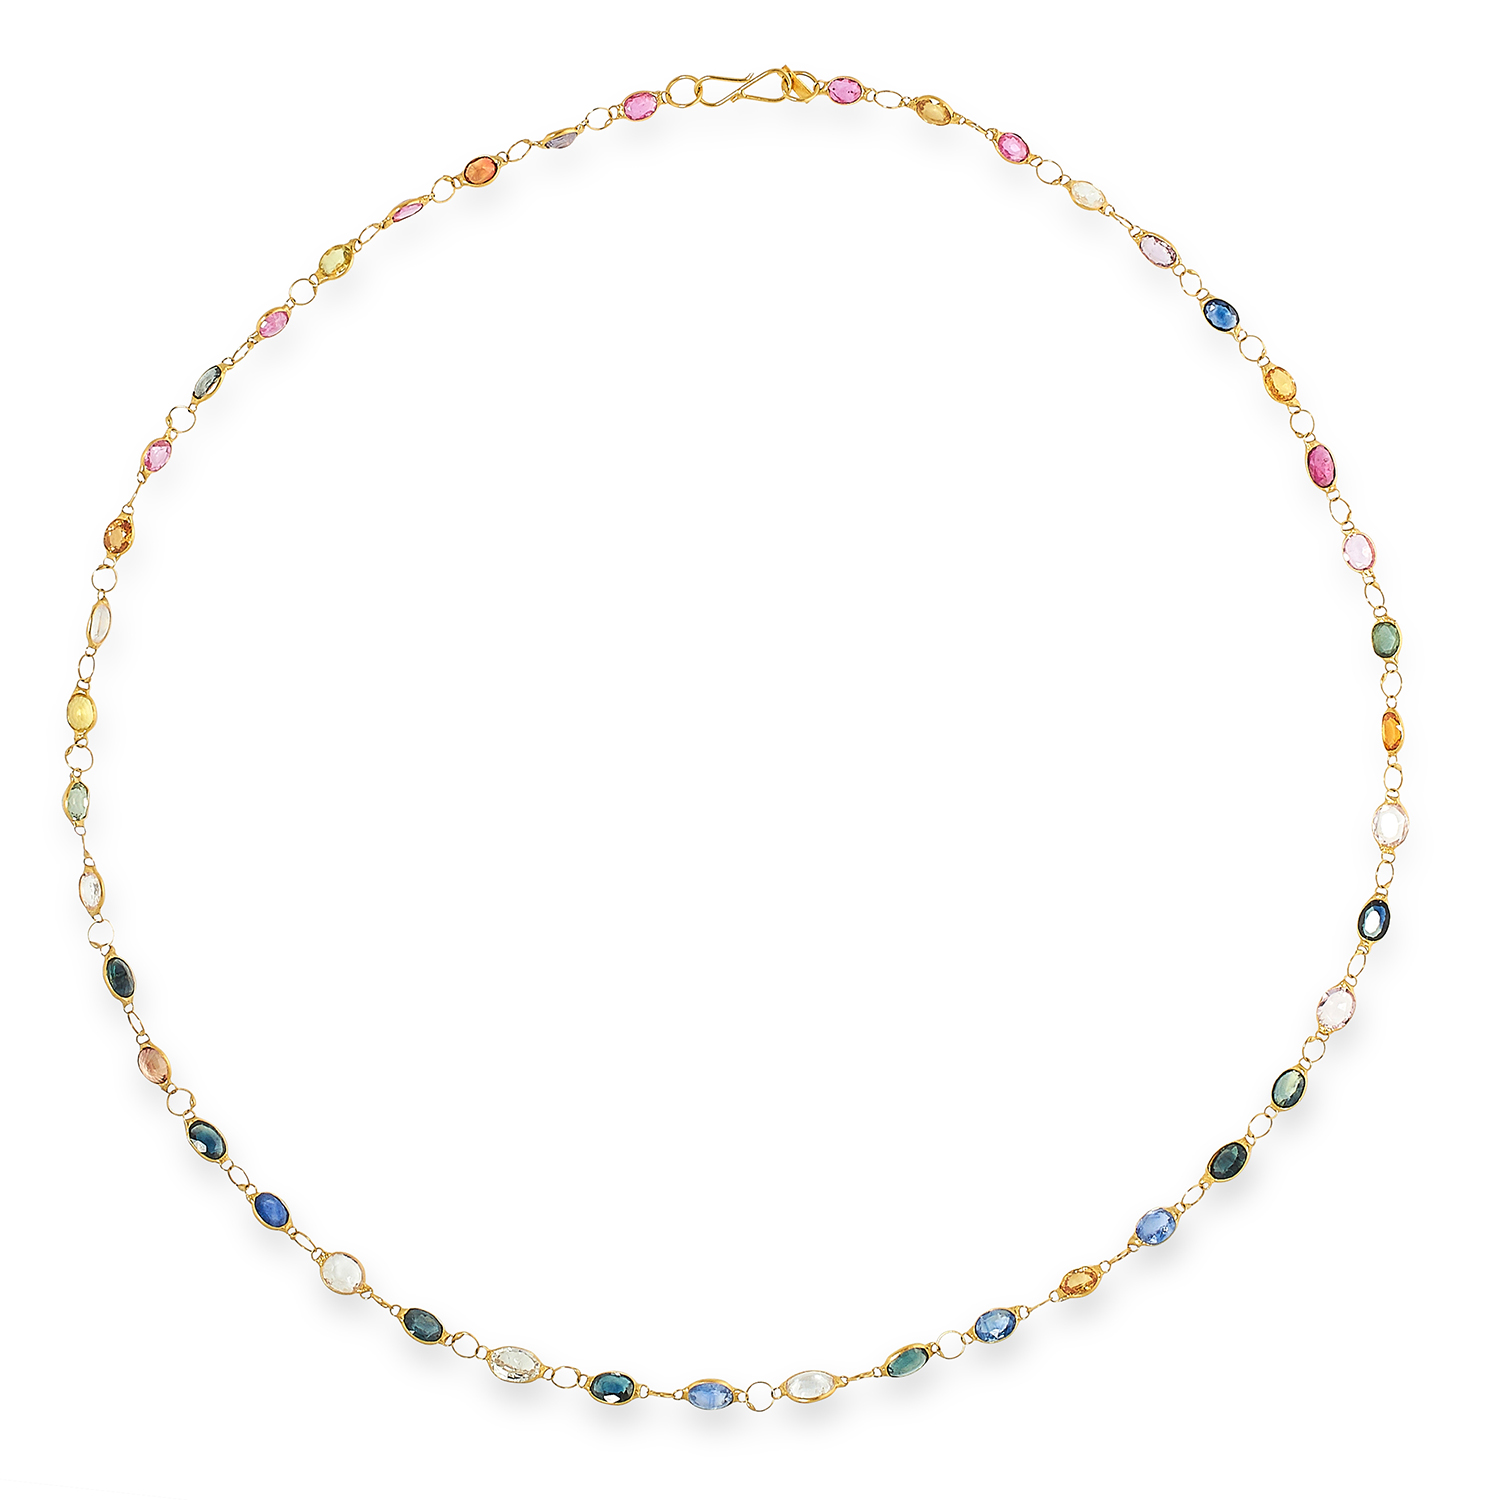 MULTICOLOURED SAPPHIRE NECKLACE set with oval cut white, pink, blue and green sapphires, 47cm, 4.